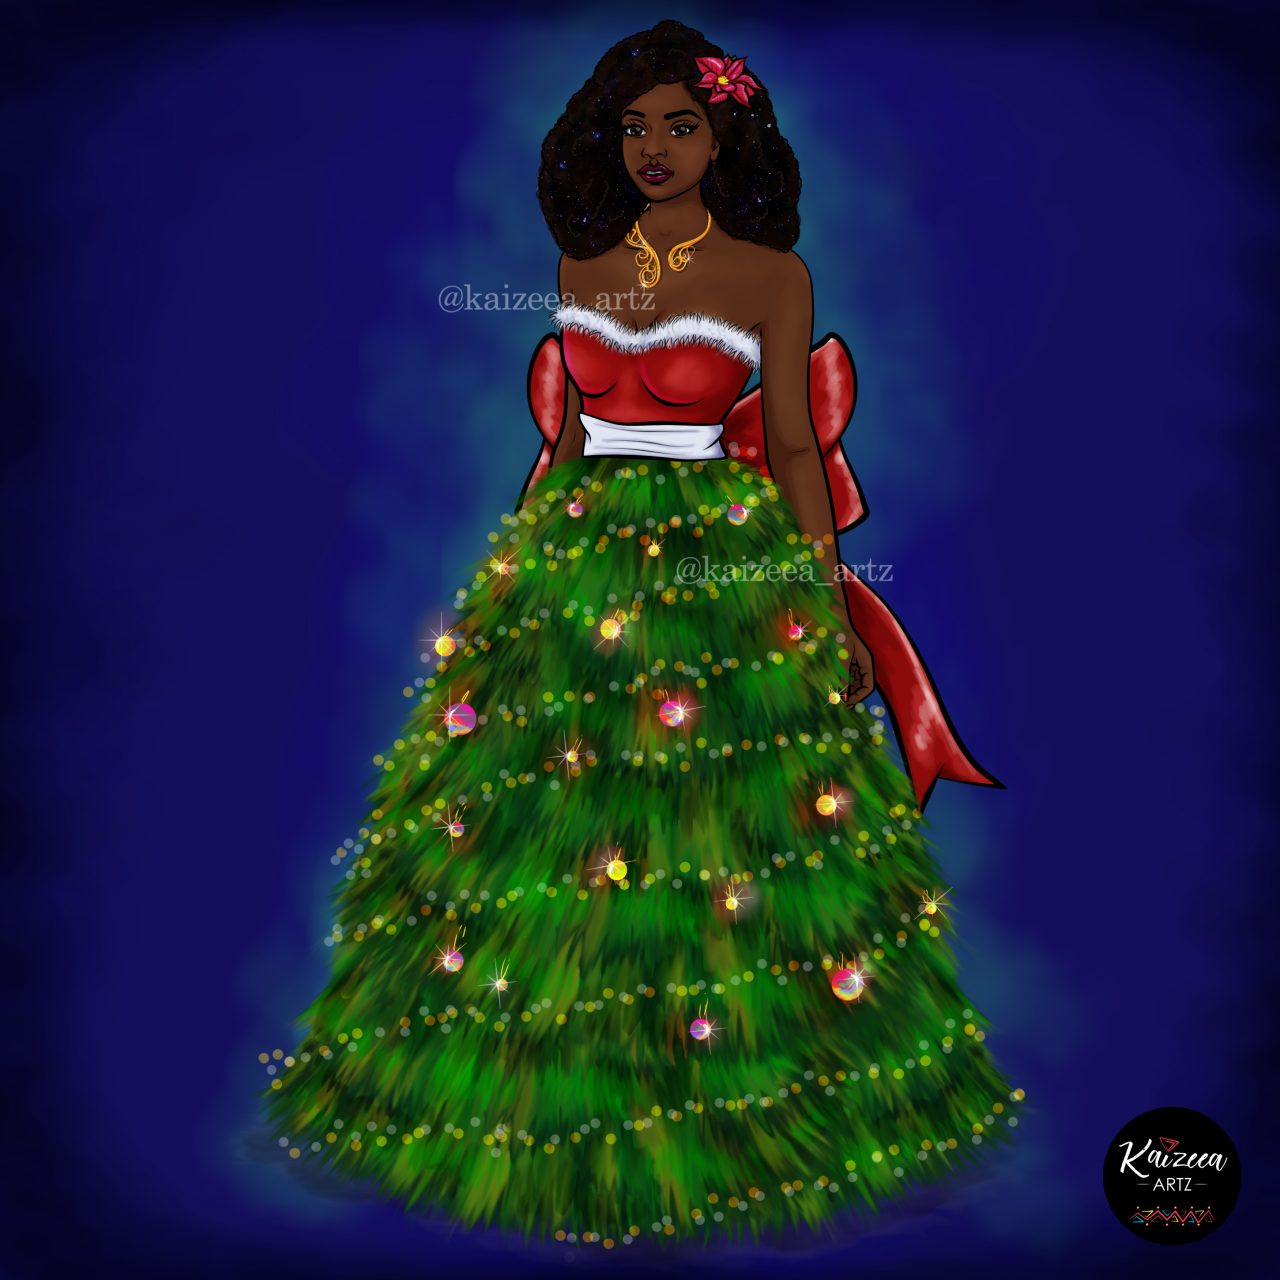 kaizeea artz kaizeeartz mauritian black girl magic mauricienne ile maurice mauritius artiste artist illustration art illustration art digital art art numerique art digitale beauty beauté drawing black art nubiammancy essentiel best afroart afro art art africaine dreamer sapin christmas tree pinecone pinetree black art support blackart art 2020 jingle bell girls who illustrate characters dope art guirlande booule de noel lumiere santa mere noel pere noel ladies who illustrate afro hair afro hair style hairstylist fashion stylist fashion mode